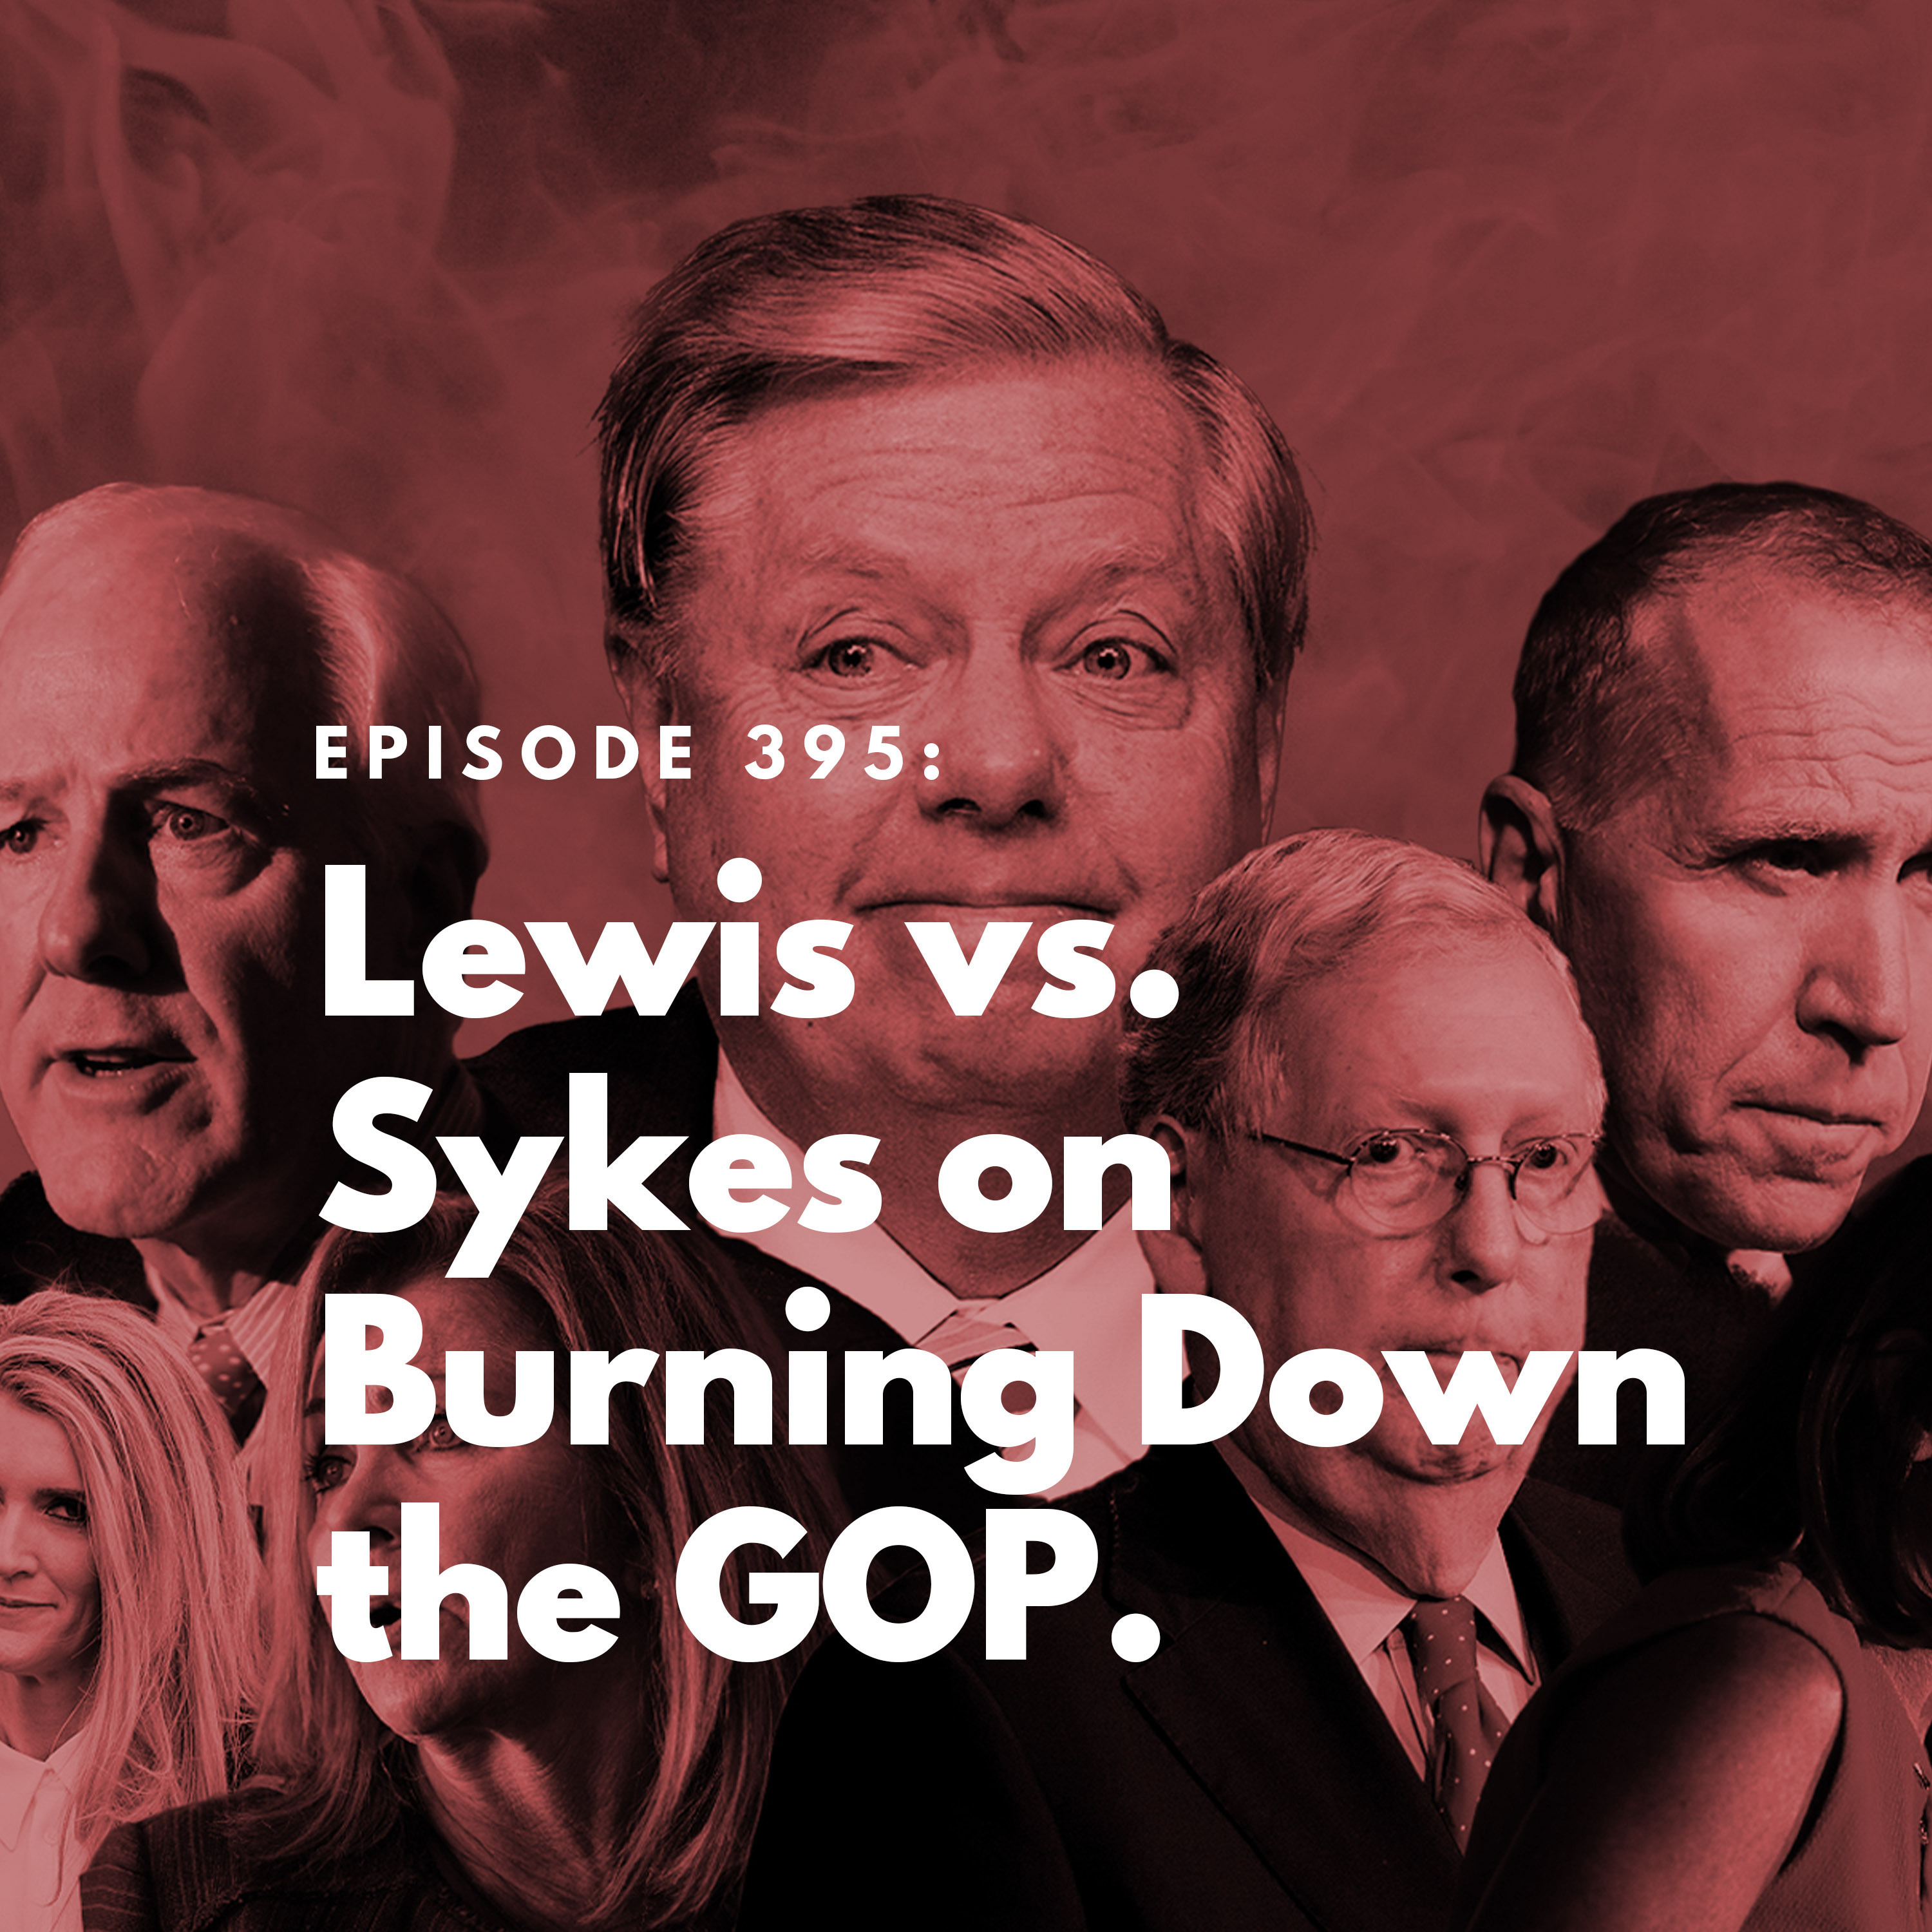 Lewis vs. Sykes on Burning Down the GOP